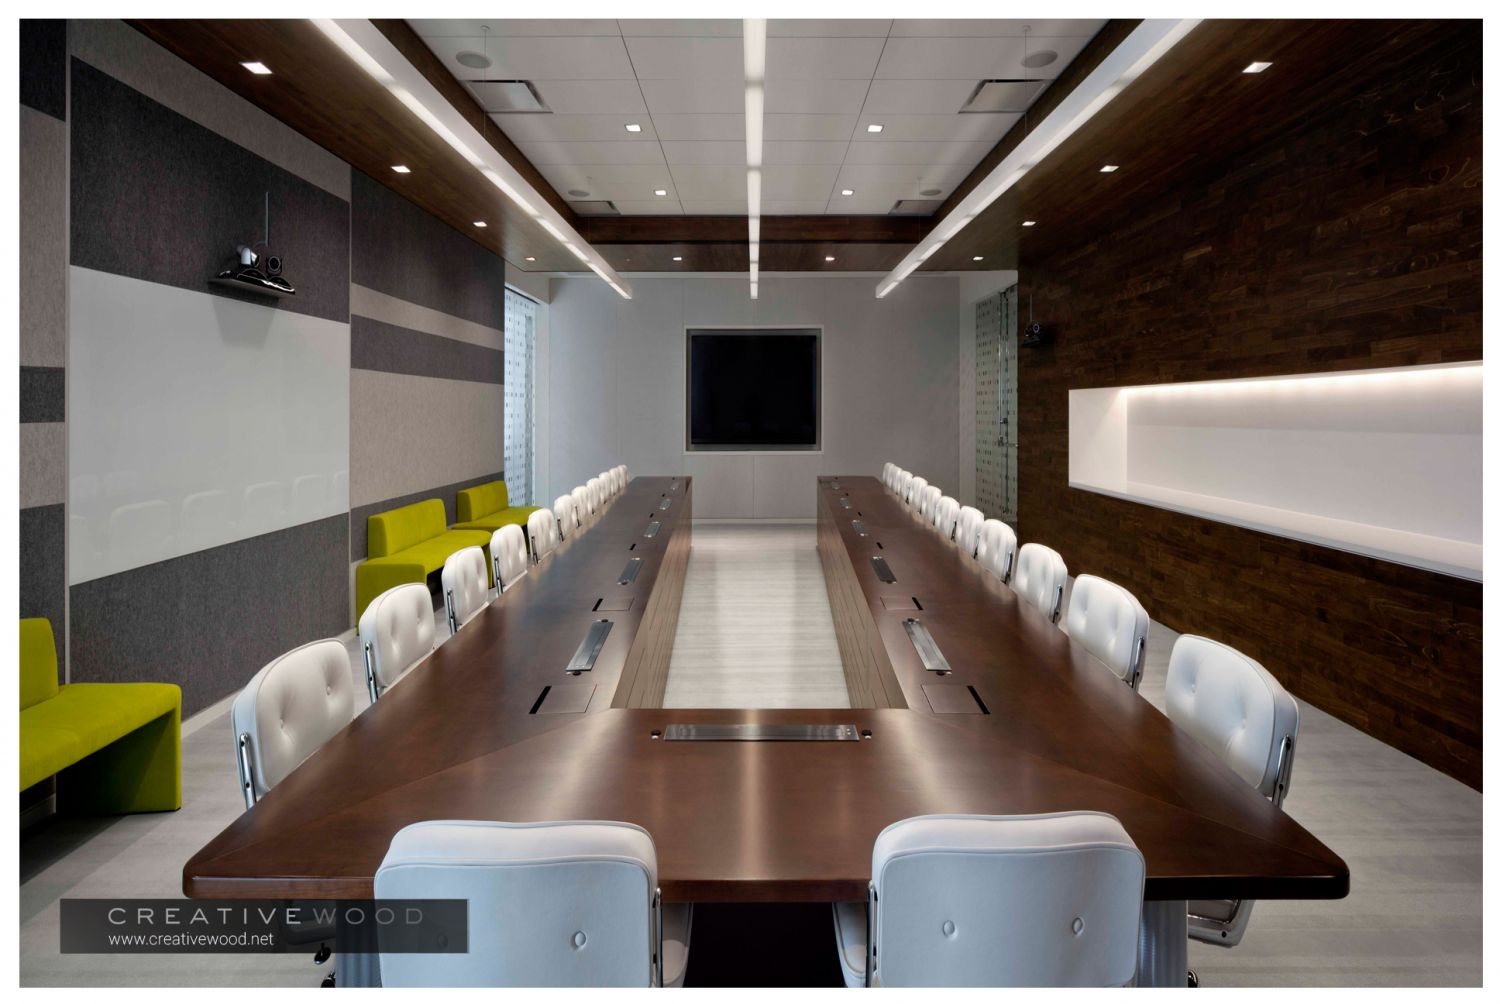 Conference Tables Custom Office Furniture Creative Wood - U shaped conference table designs